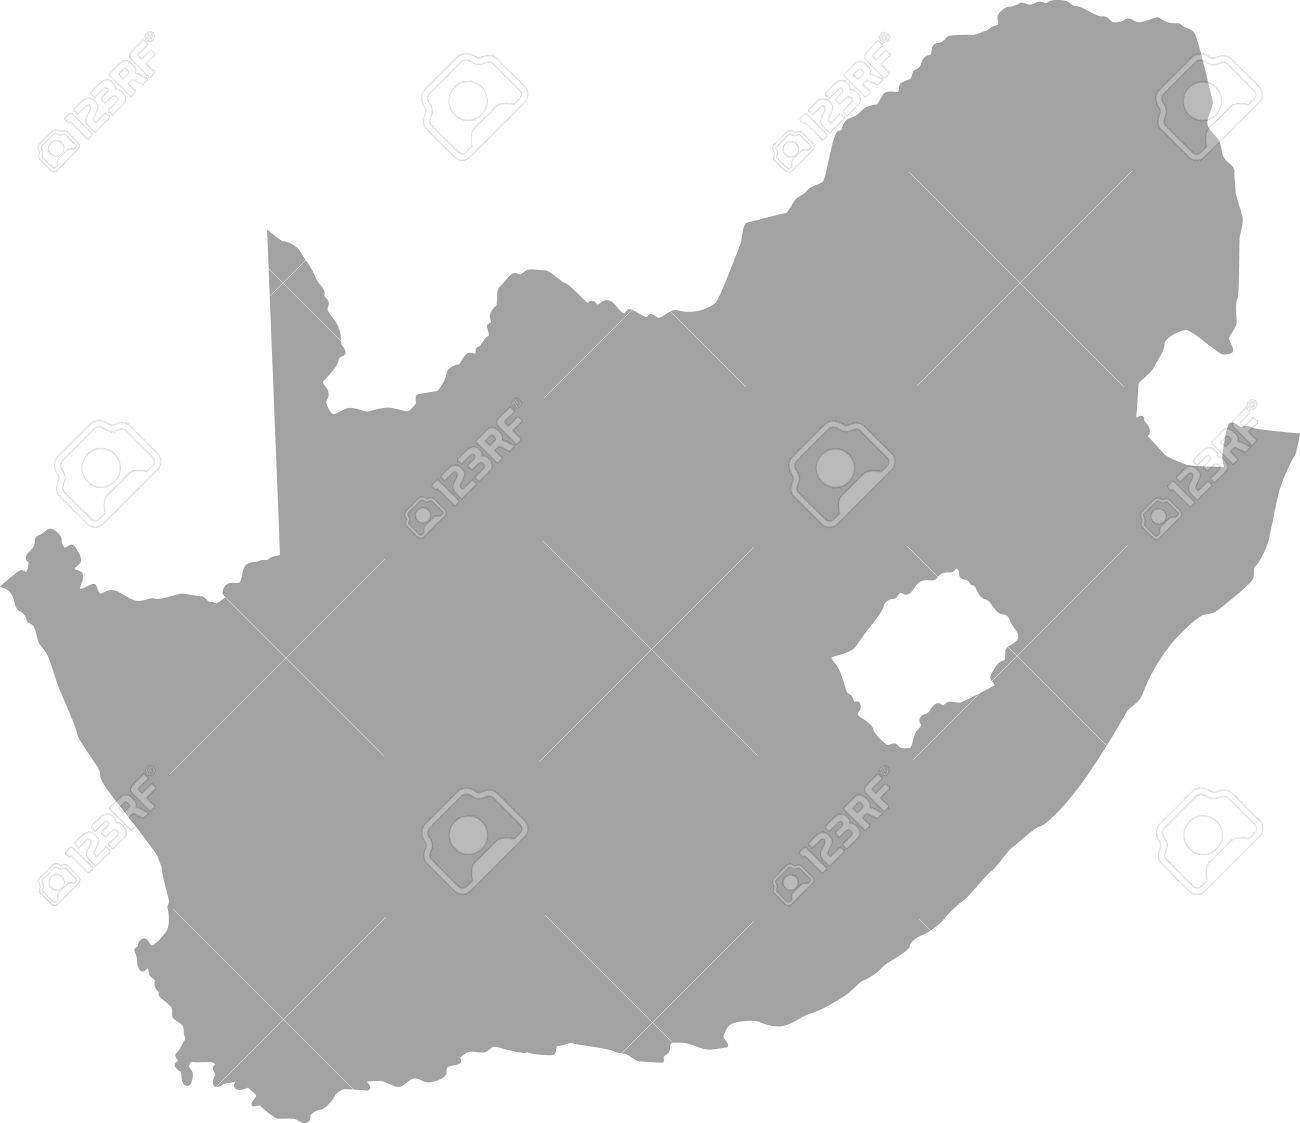 South Africa Map Outline In Gray Color Royalty Free Cliparts     South Africa map outline in gray color Stock Vector   50920430